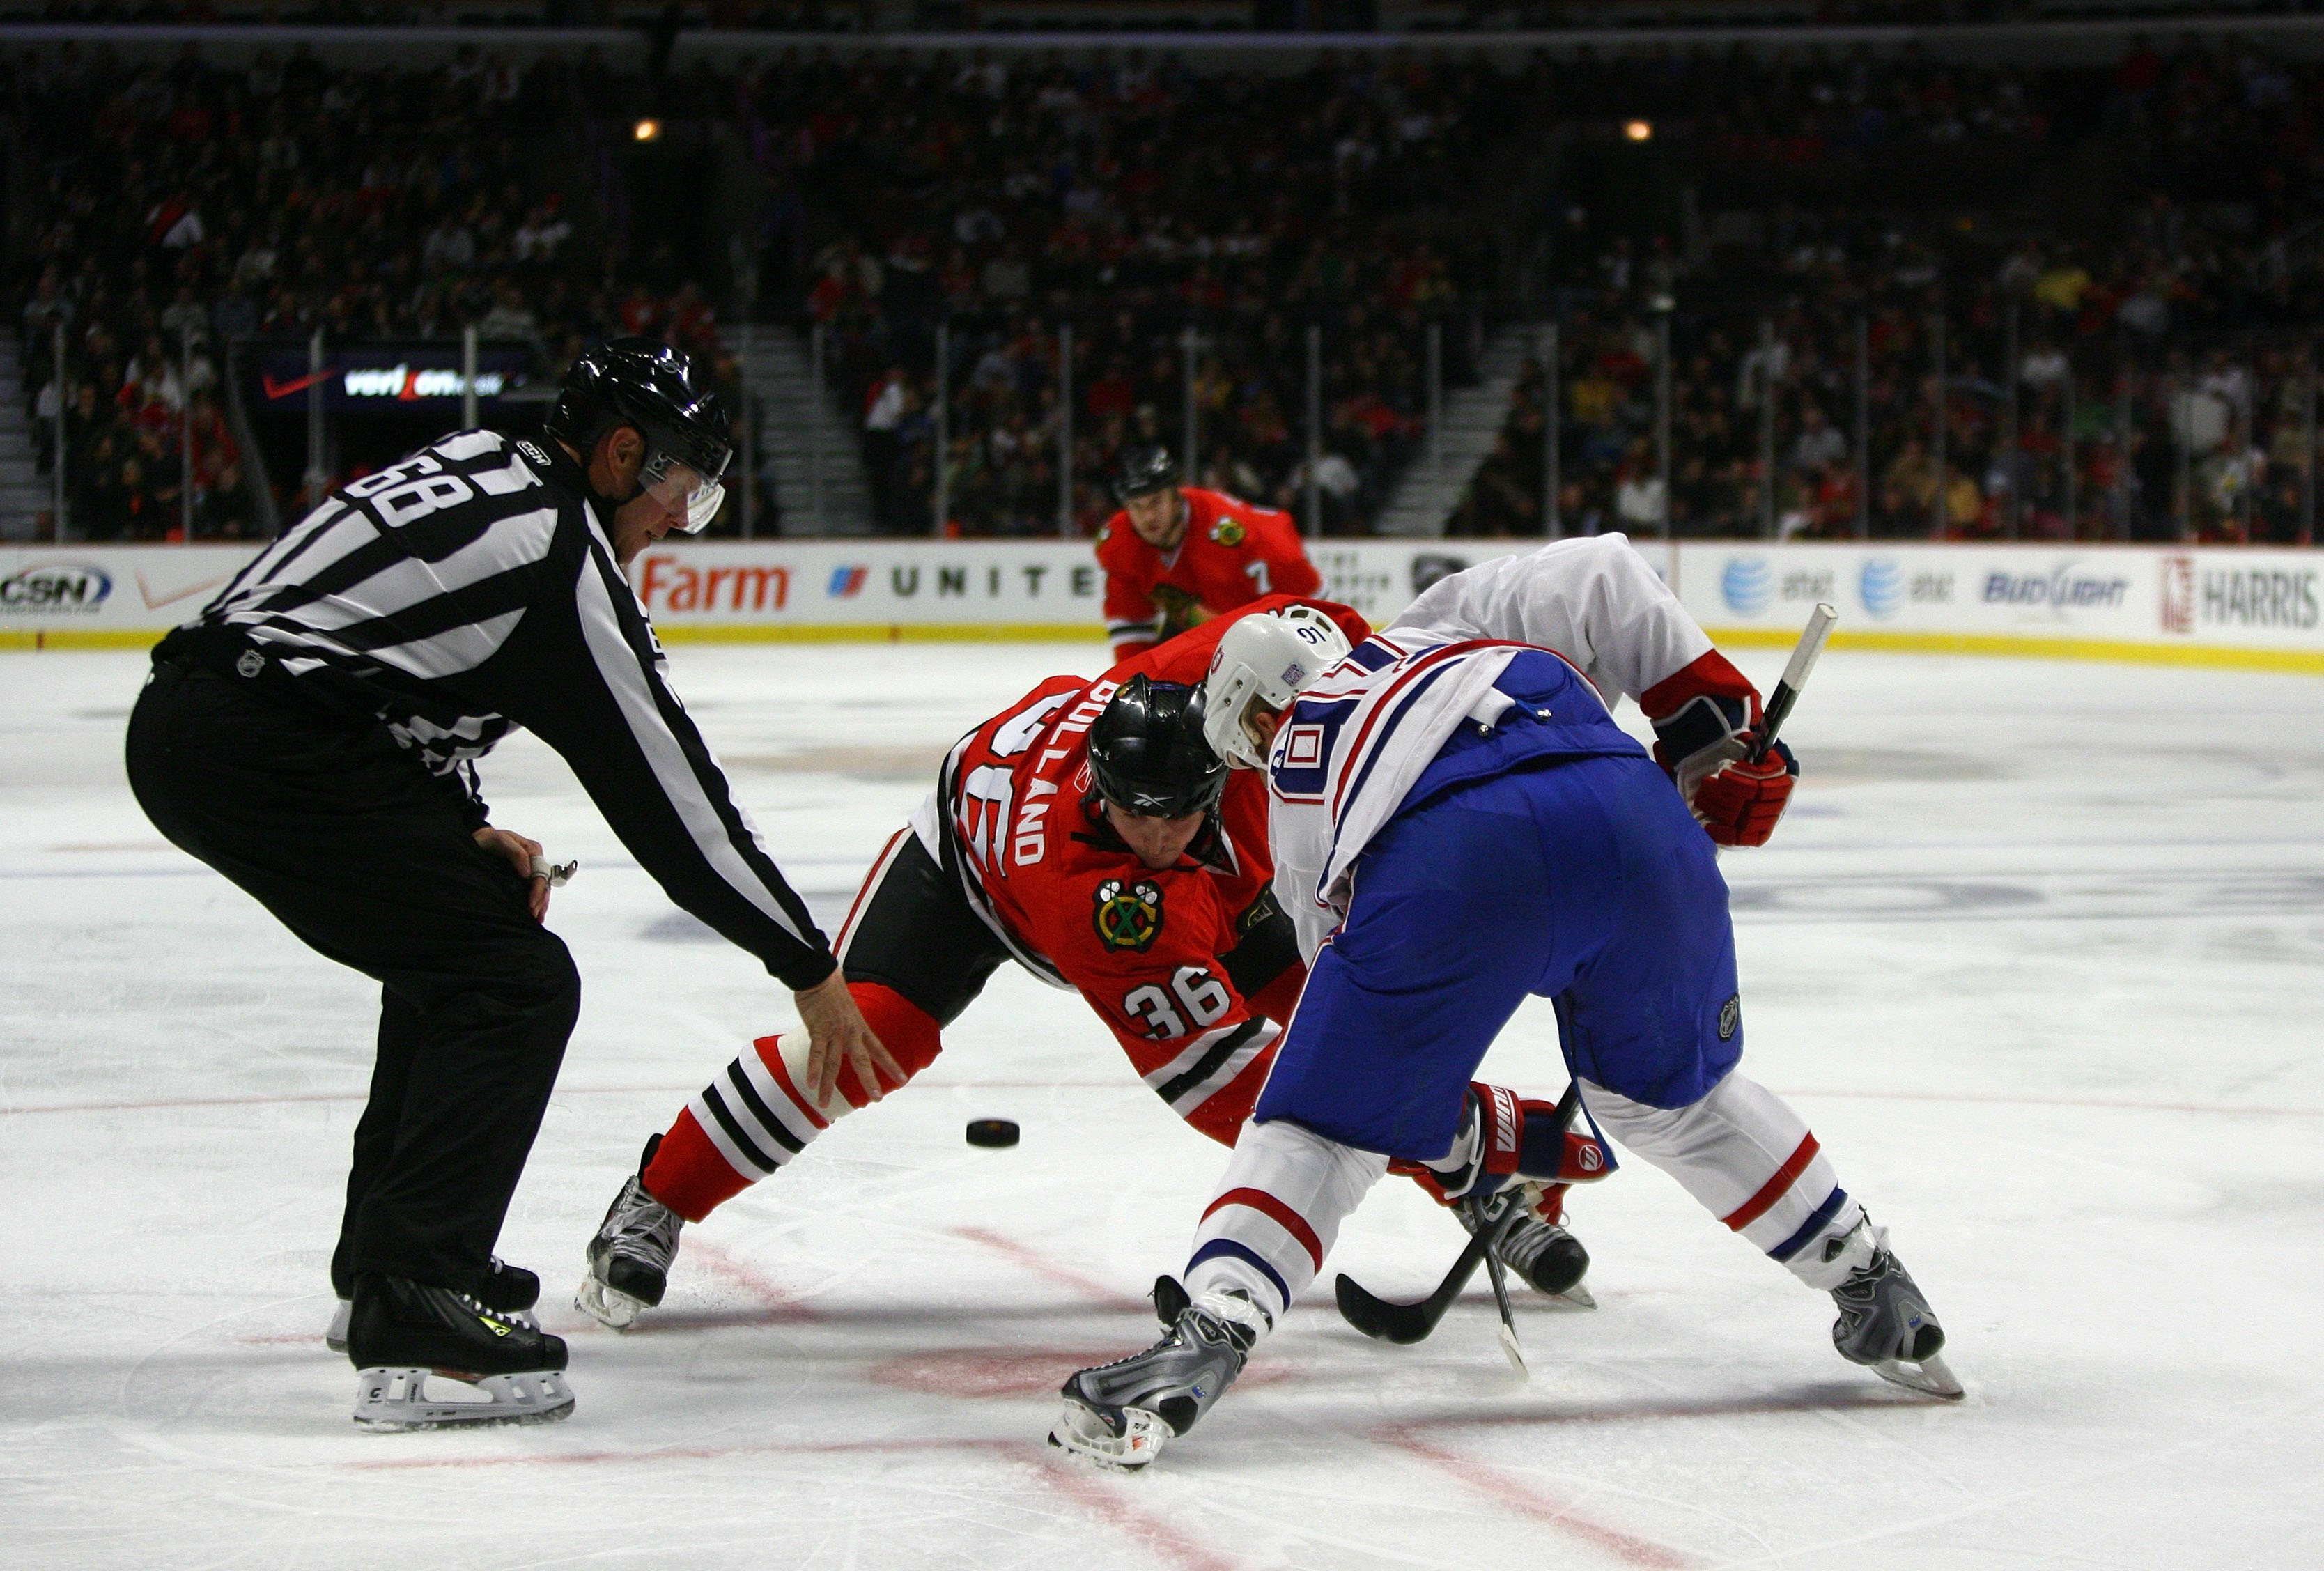 CHICAGO - OCTOBER 30:  Dave Bolland #36 of the Chicago Blackhawks takes the offensive zone faceoff against Scott Gomez #91 of the Montreal Canadiens during their game at the United Center on October 30, 2009 in Chicago, Illinois. The Blackhawks defeated t